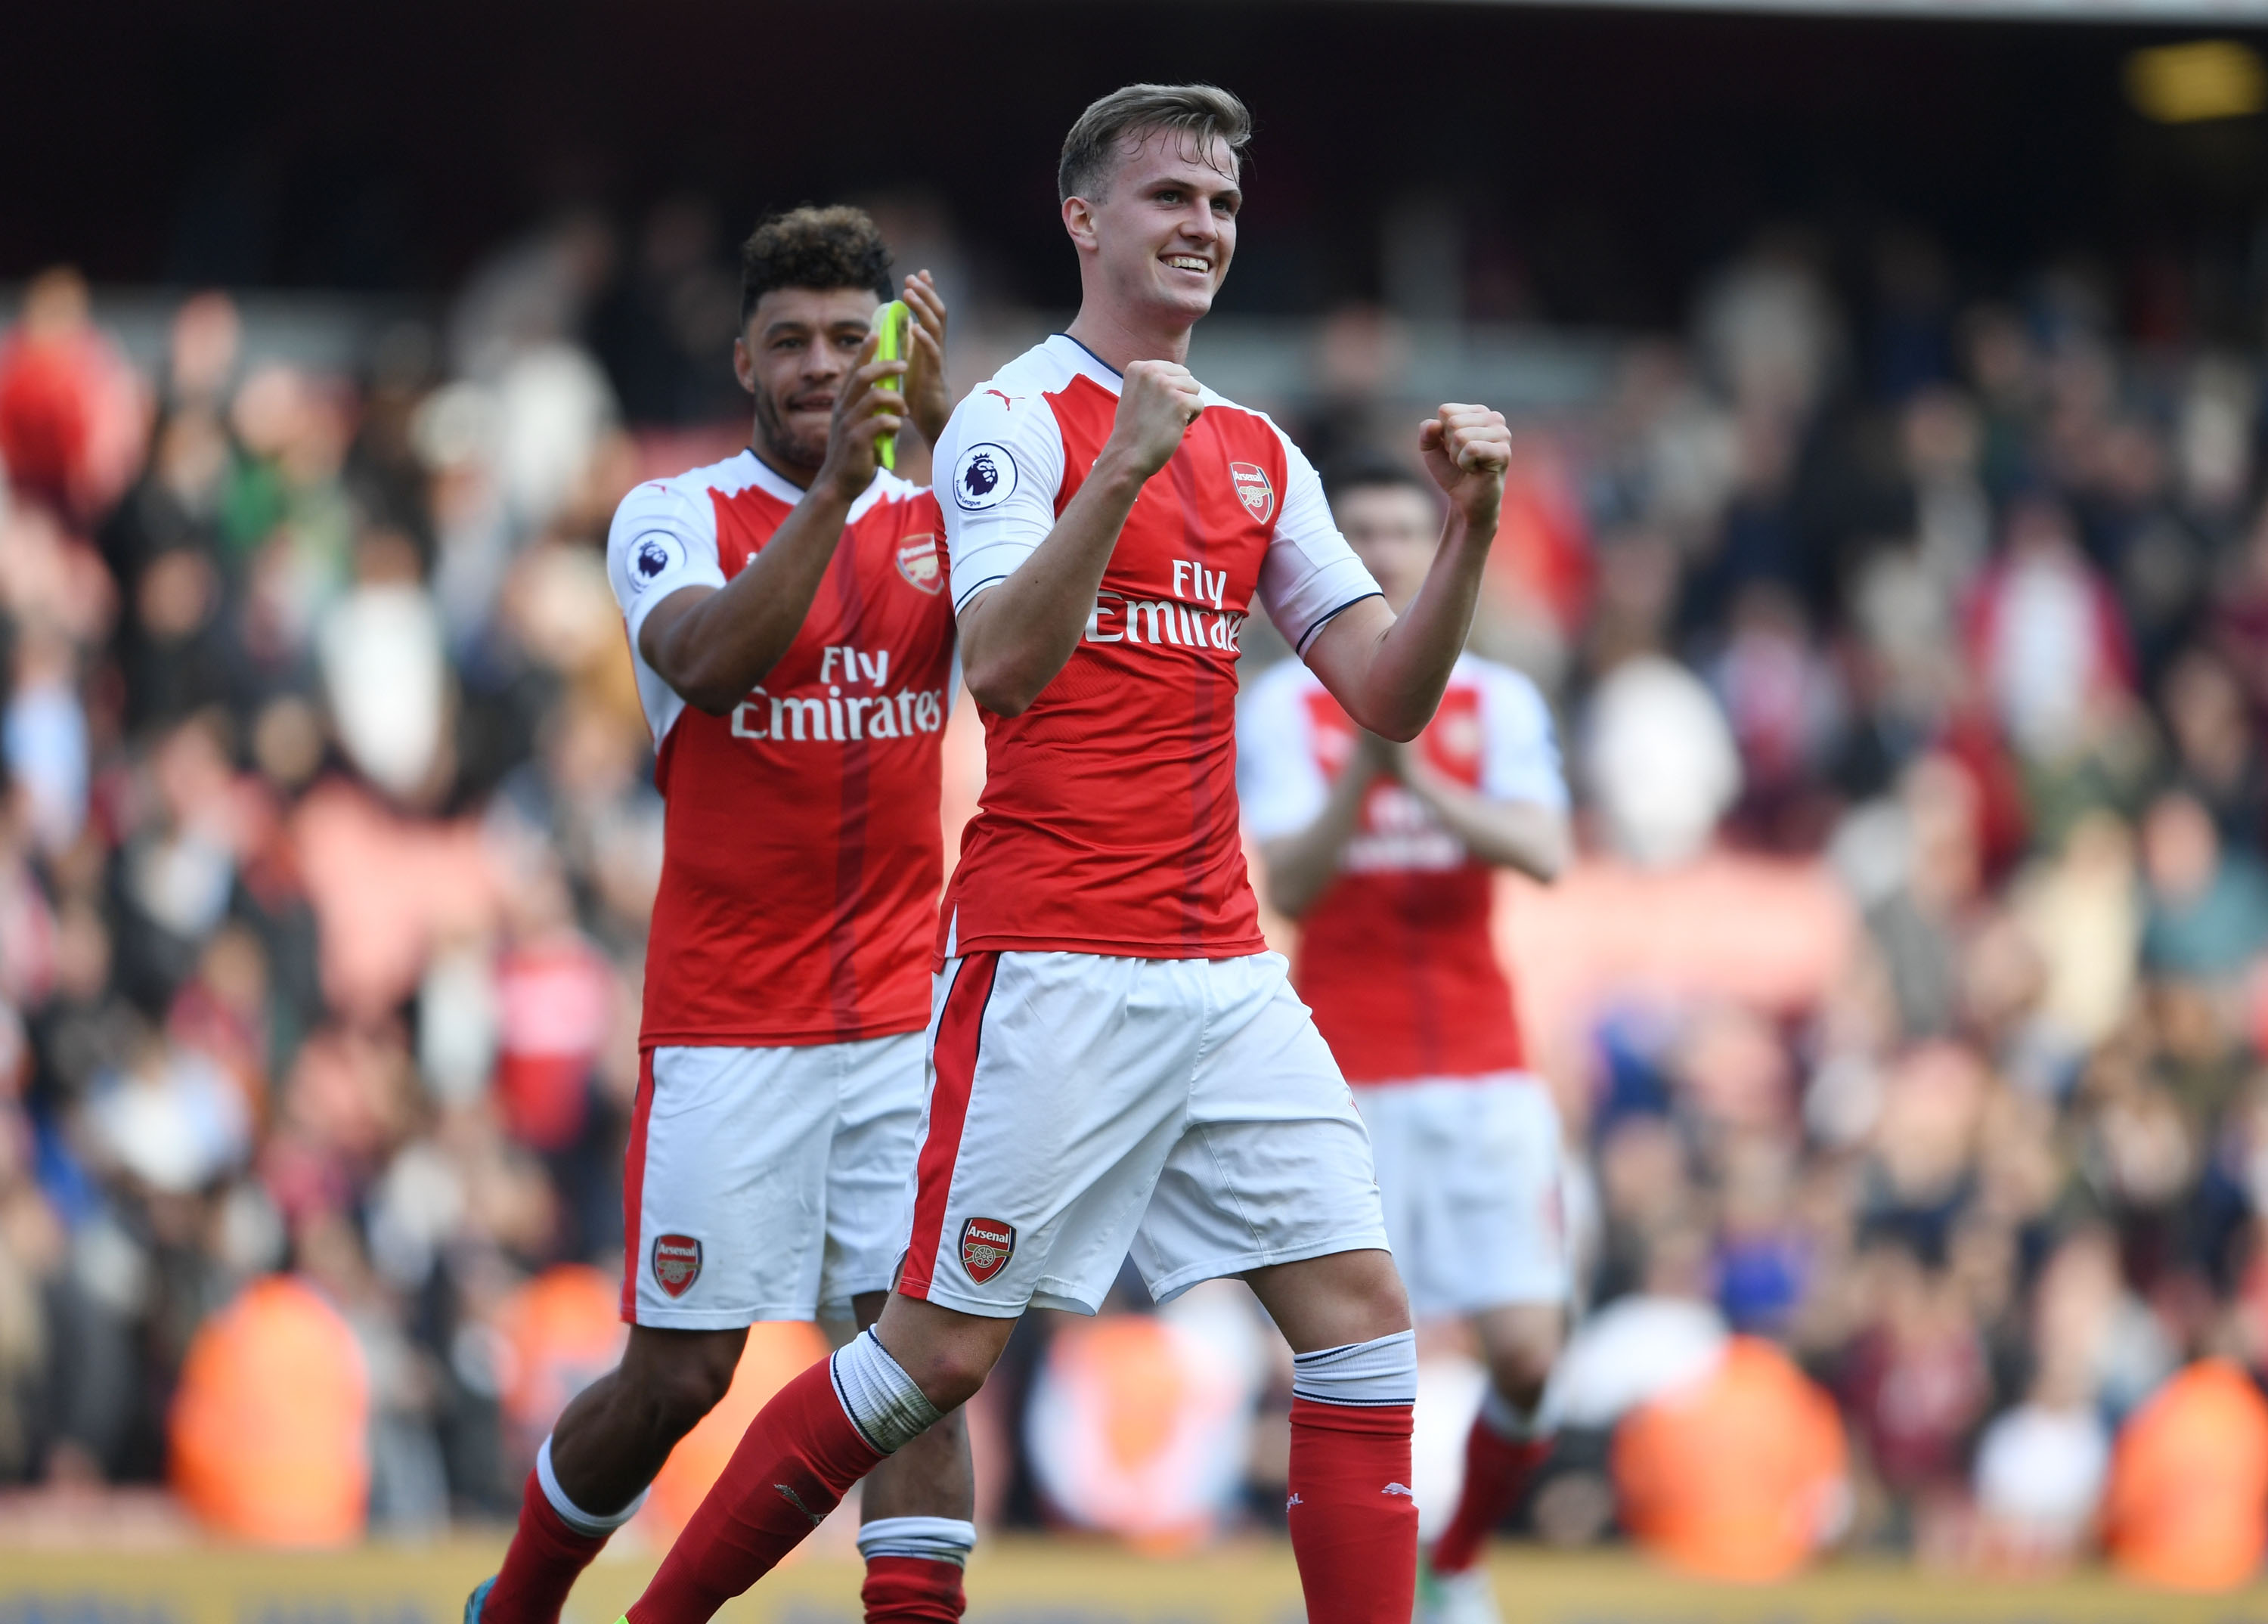 Arsenal fans compare Rob Holding to Fabio Cannavaro with new chant